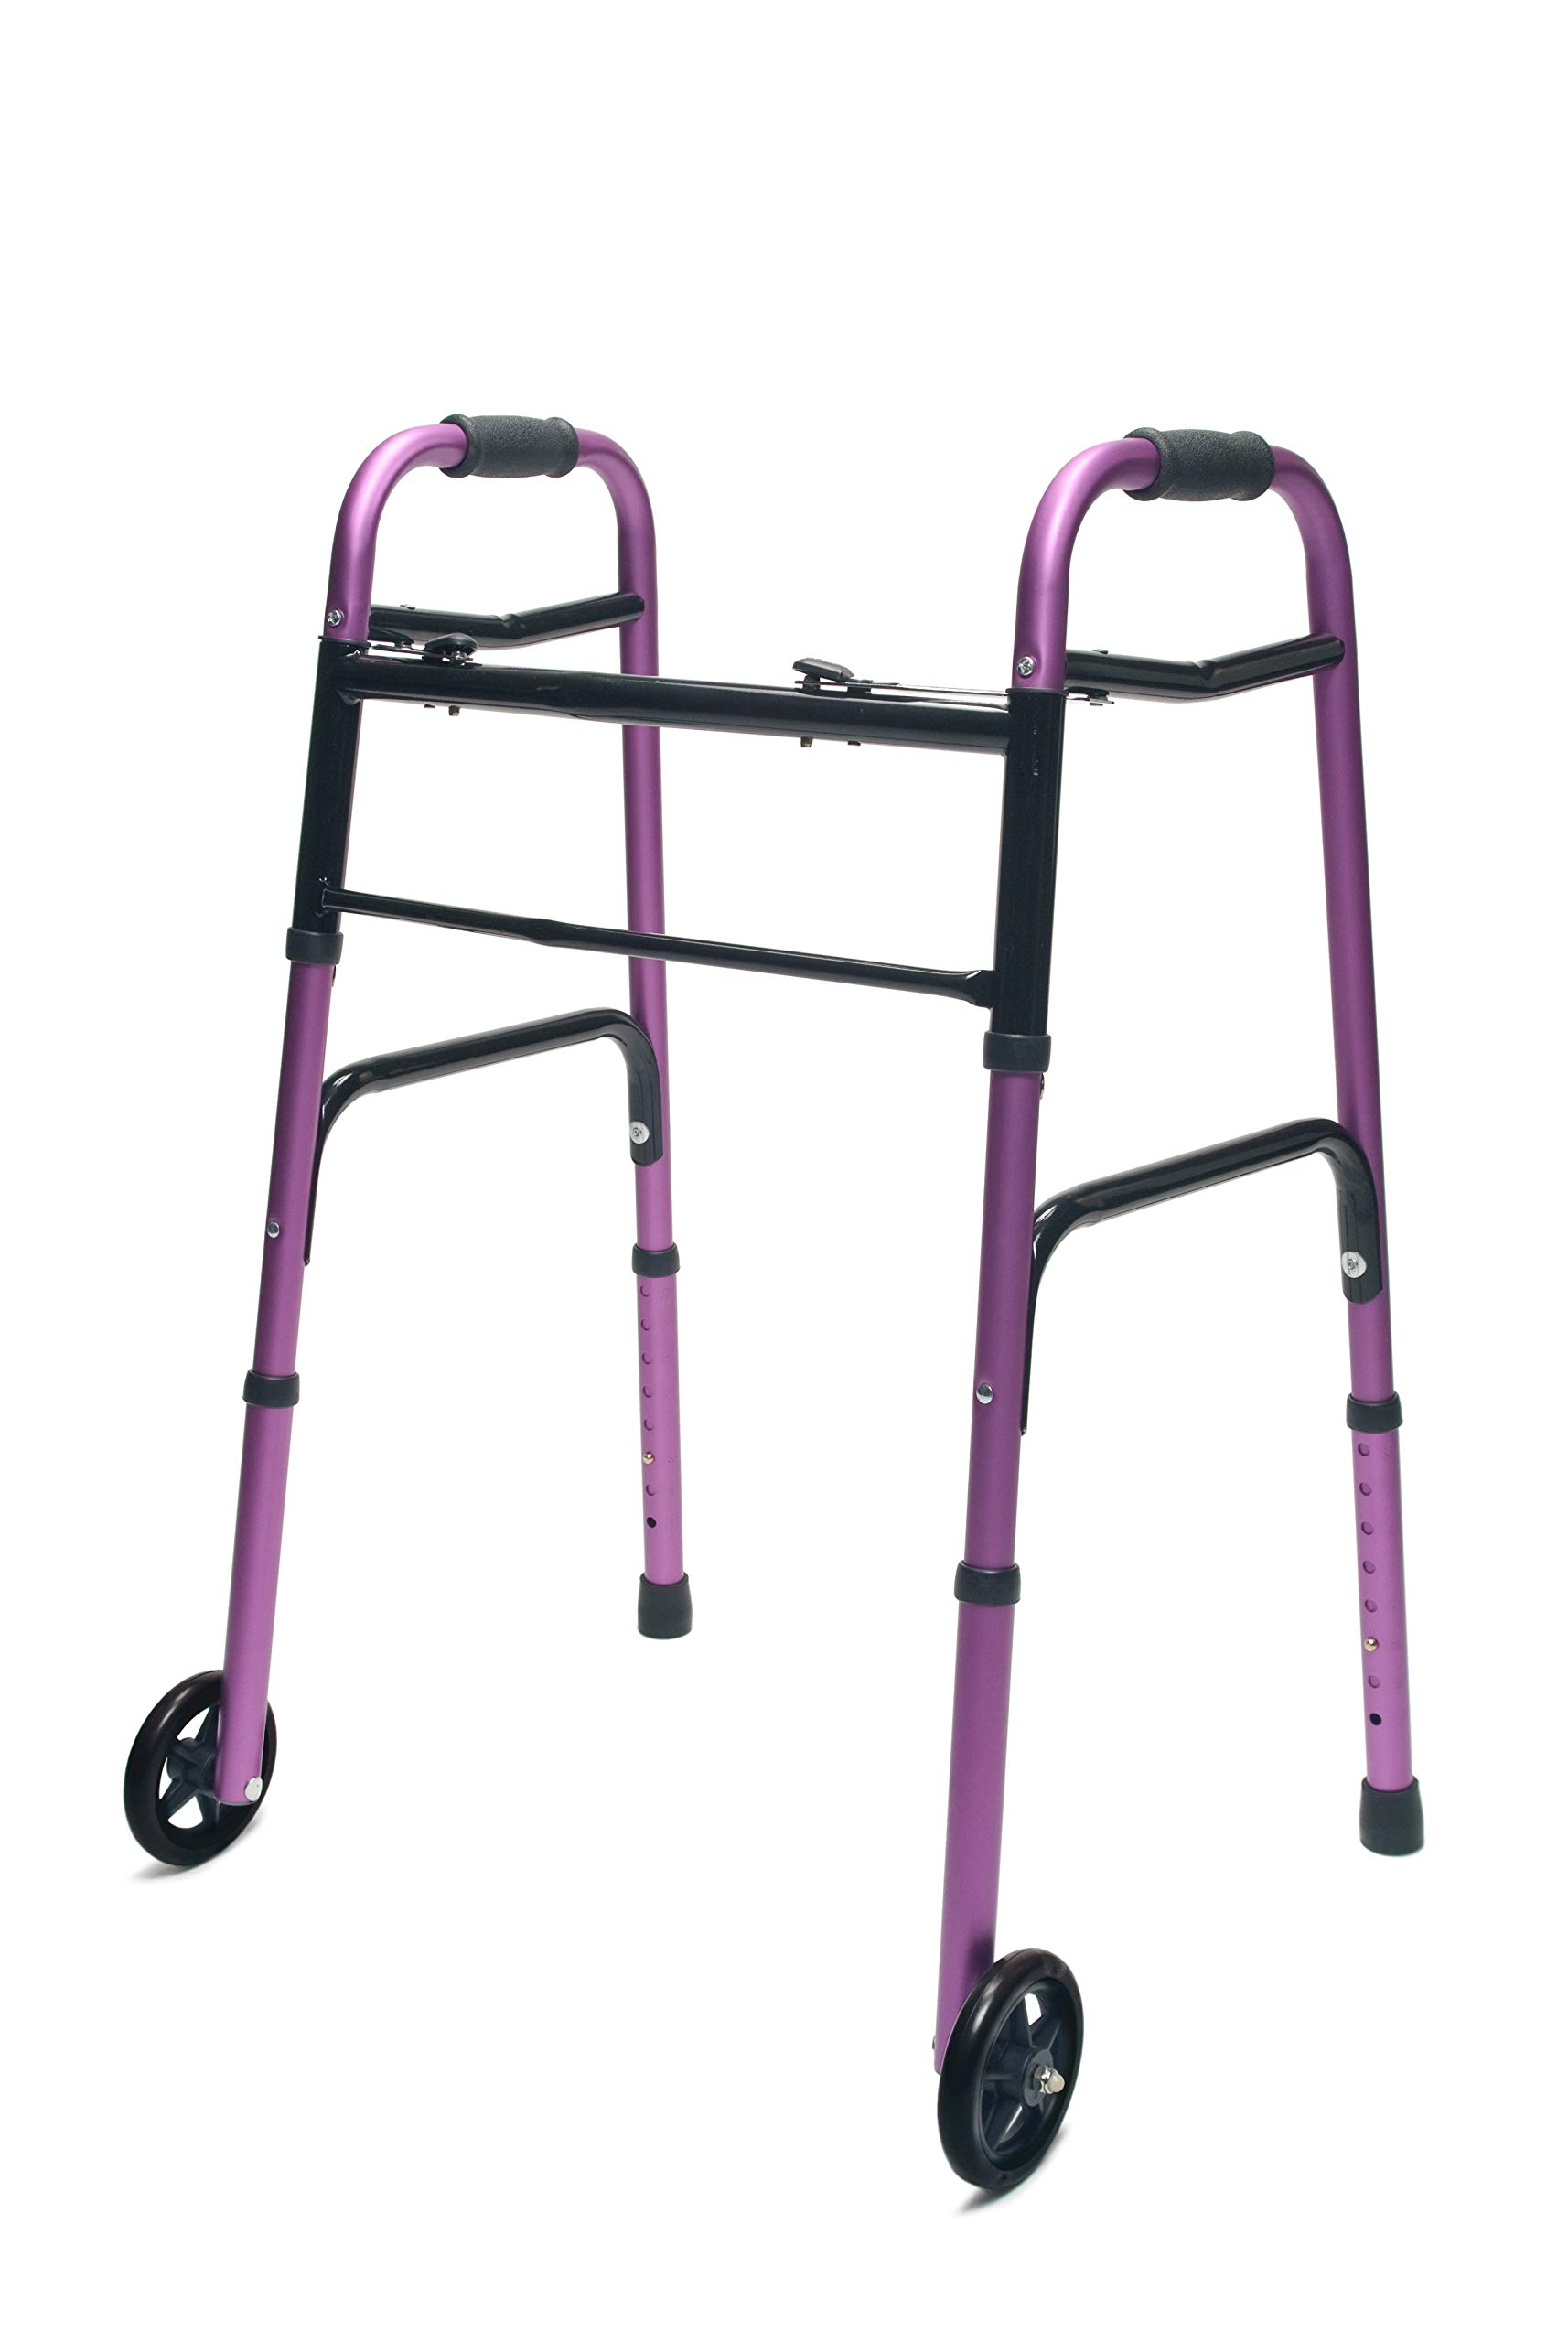 Lumex ColorSelect Adult Walker with 5'' Wheels, Plum, 716270P-1 by Graham-Field